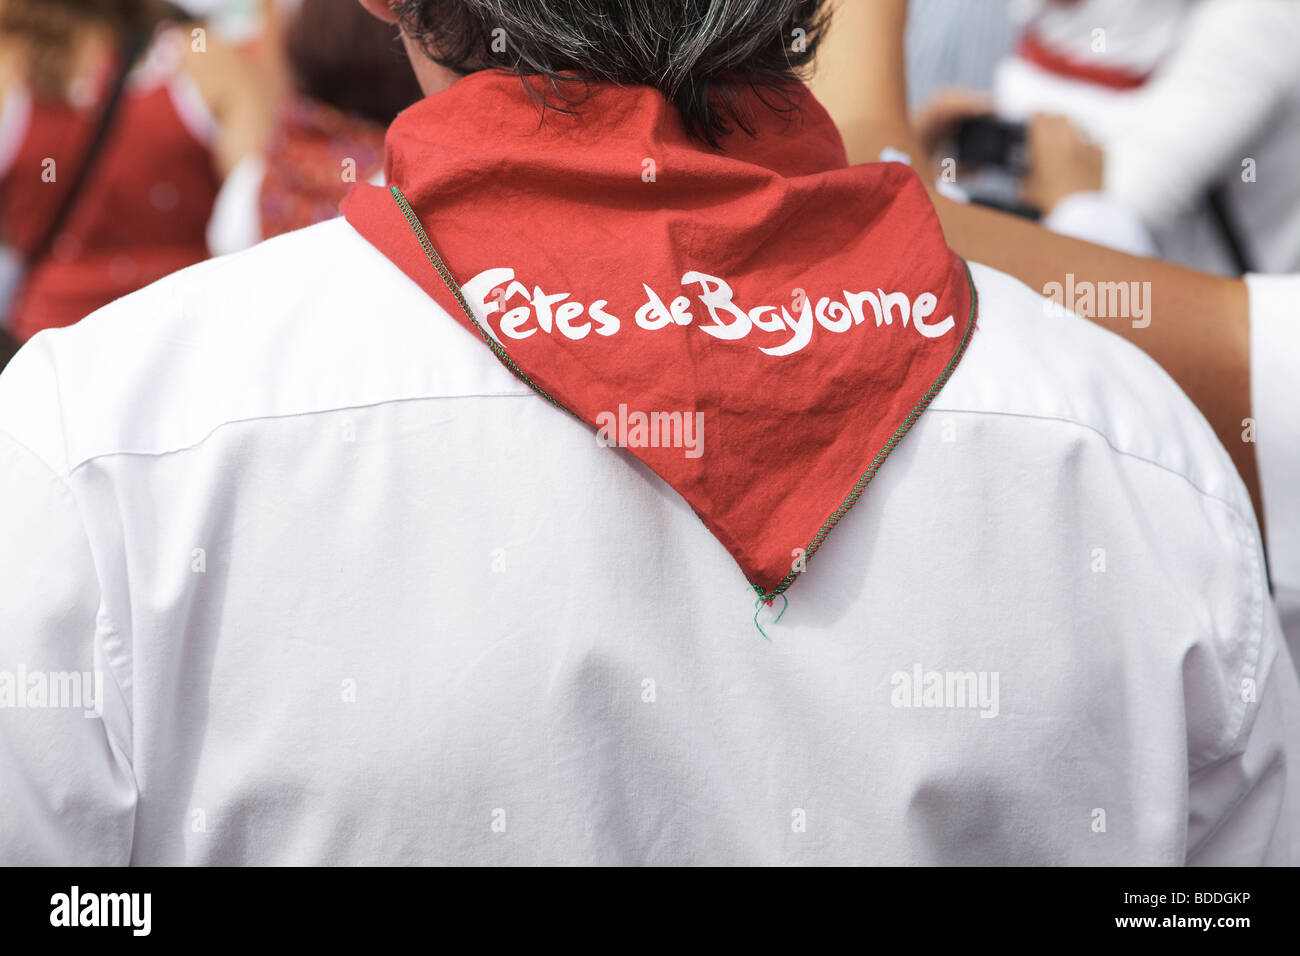 Red neckerchief on festival goer at the Fetes de Bayonne, France - Stock Image